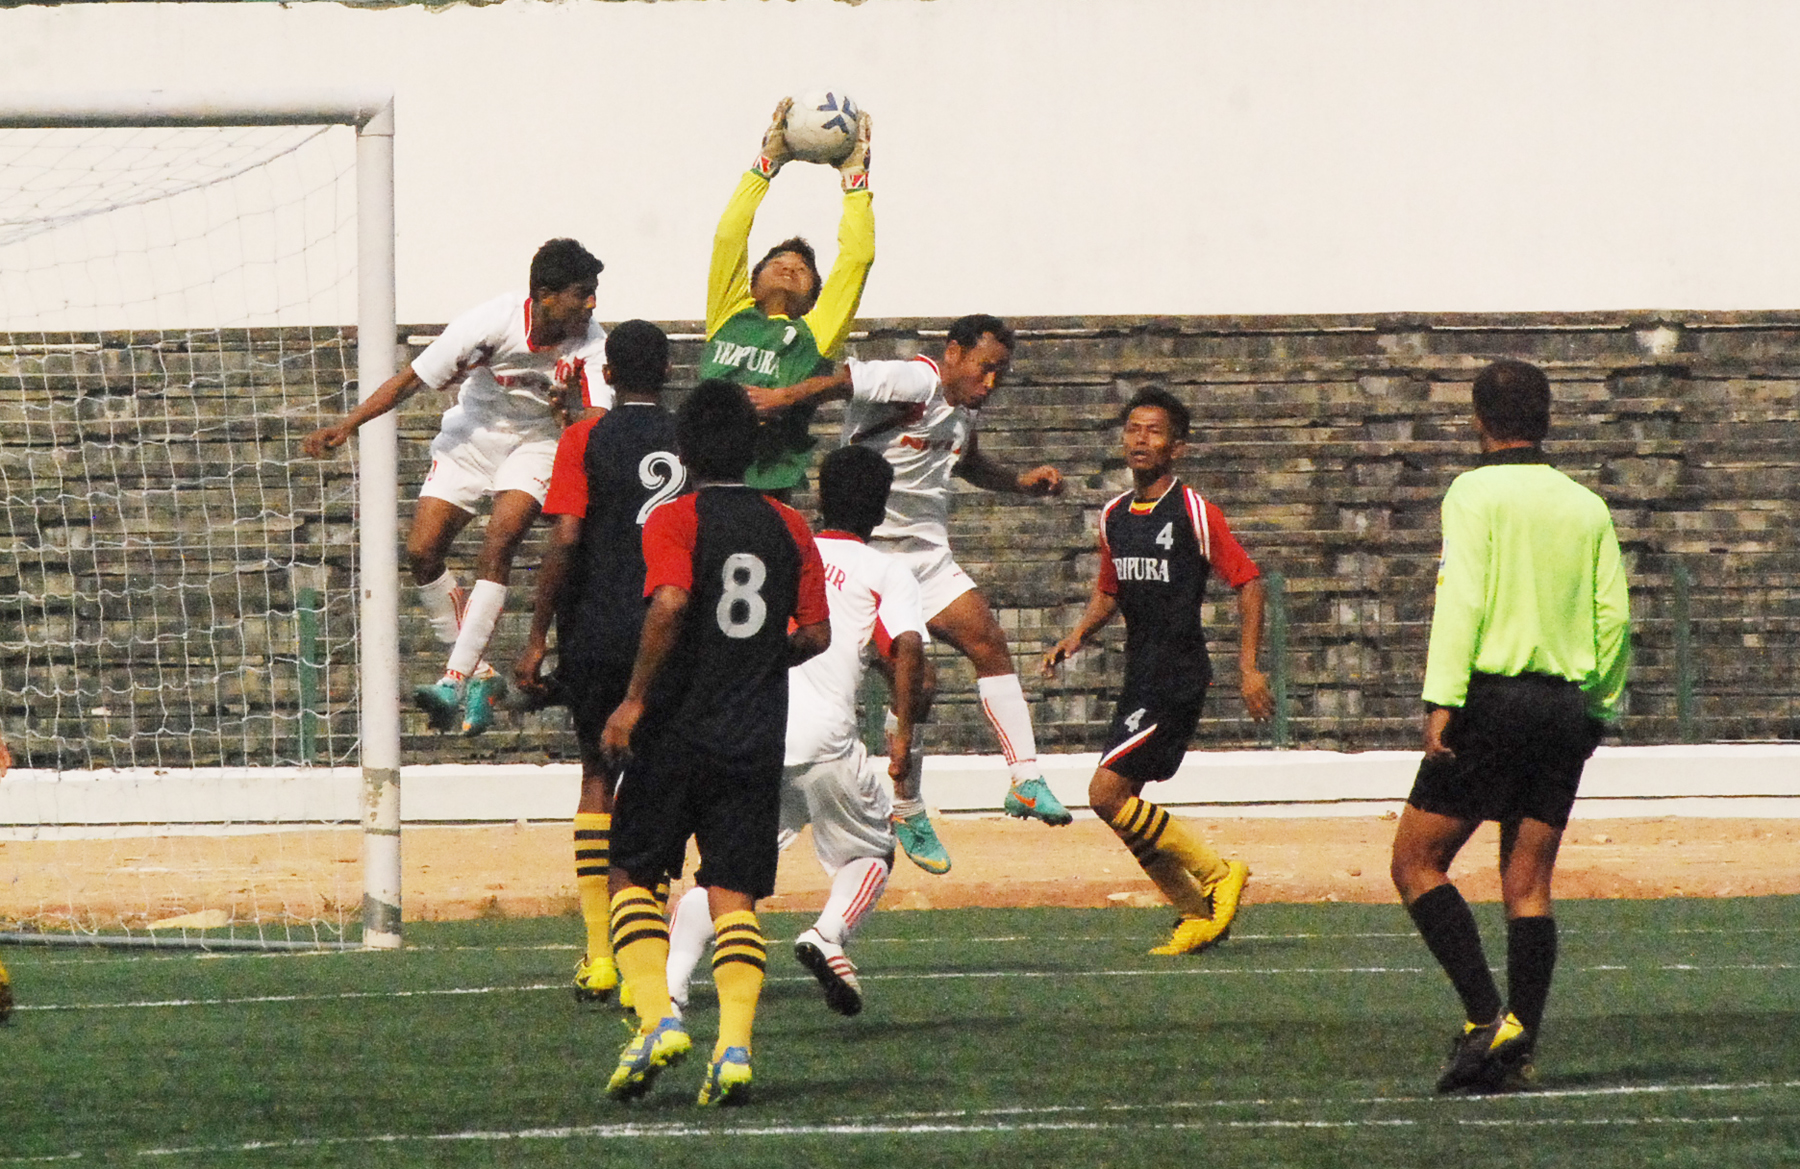 Manipur custodian, S Dinakumar rising above all for a magnificient save against the marauding Tripura lads.